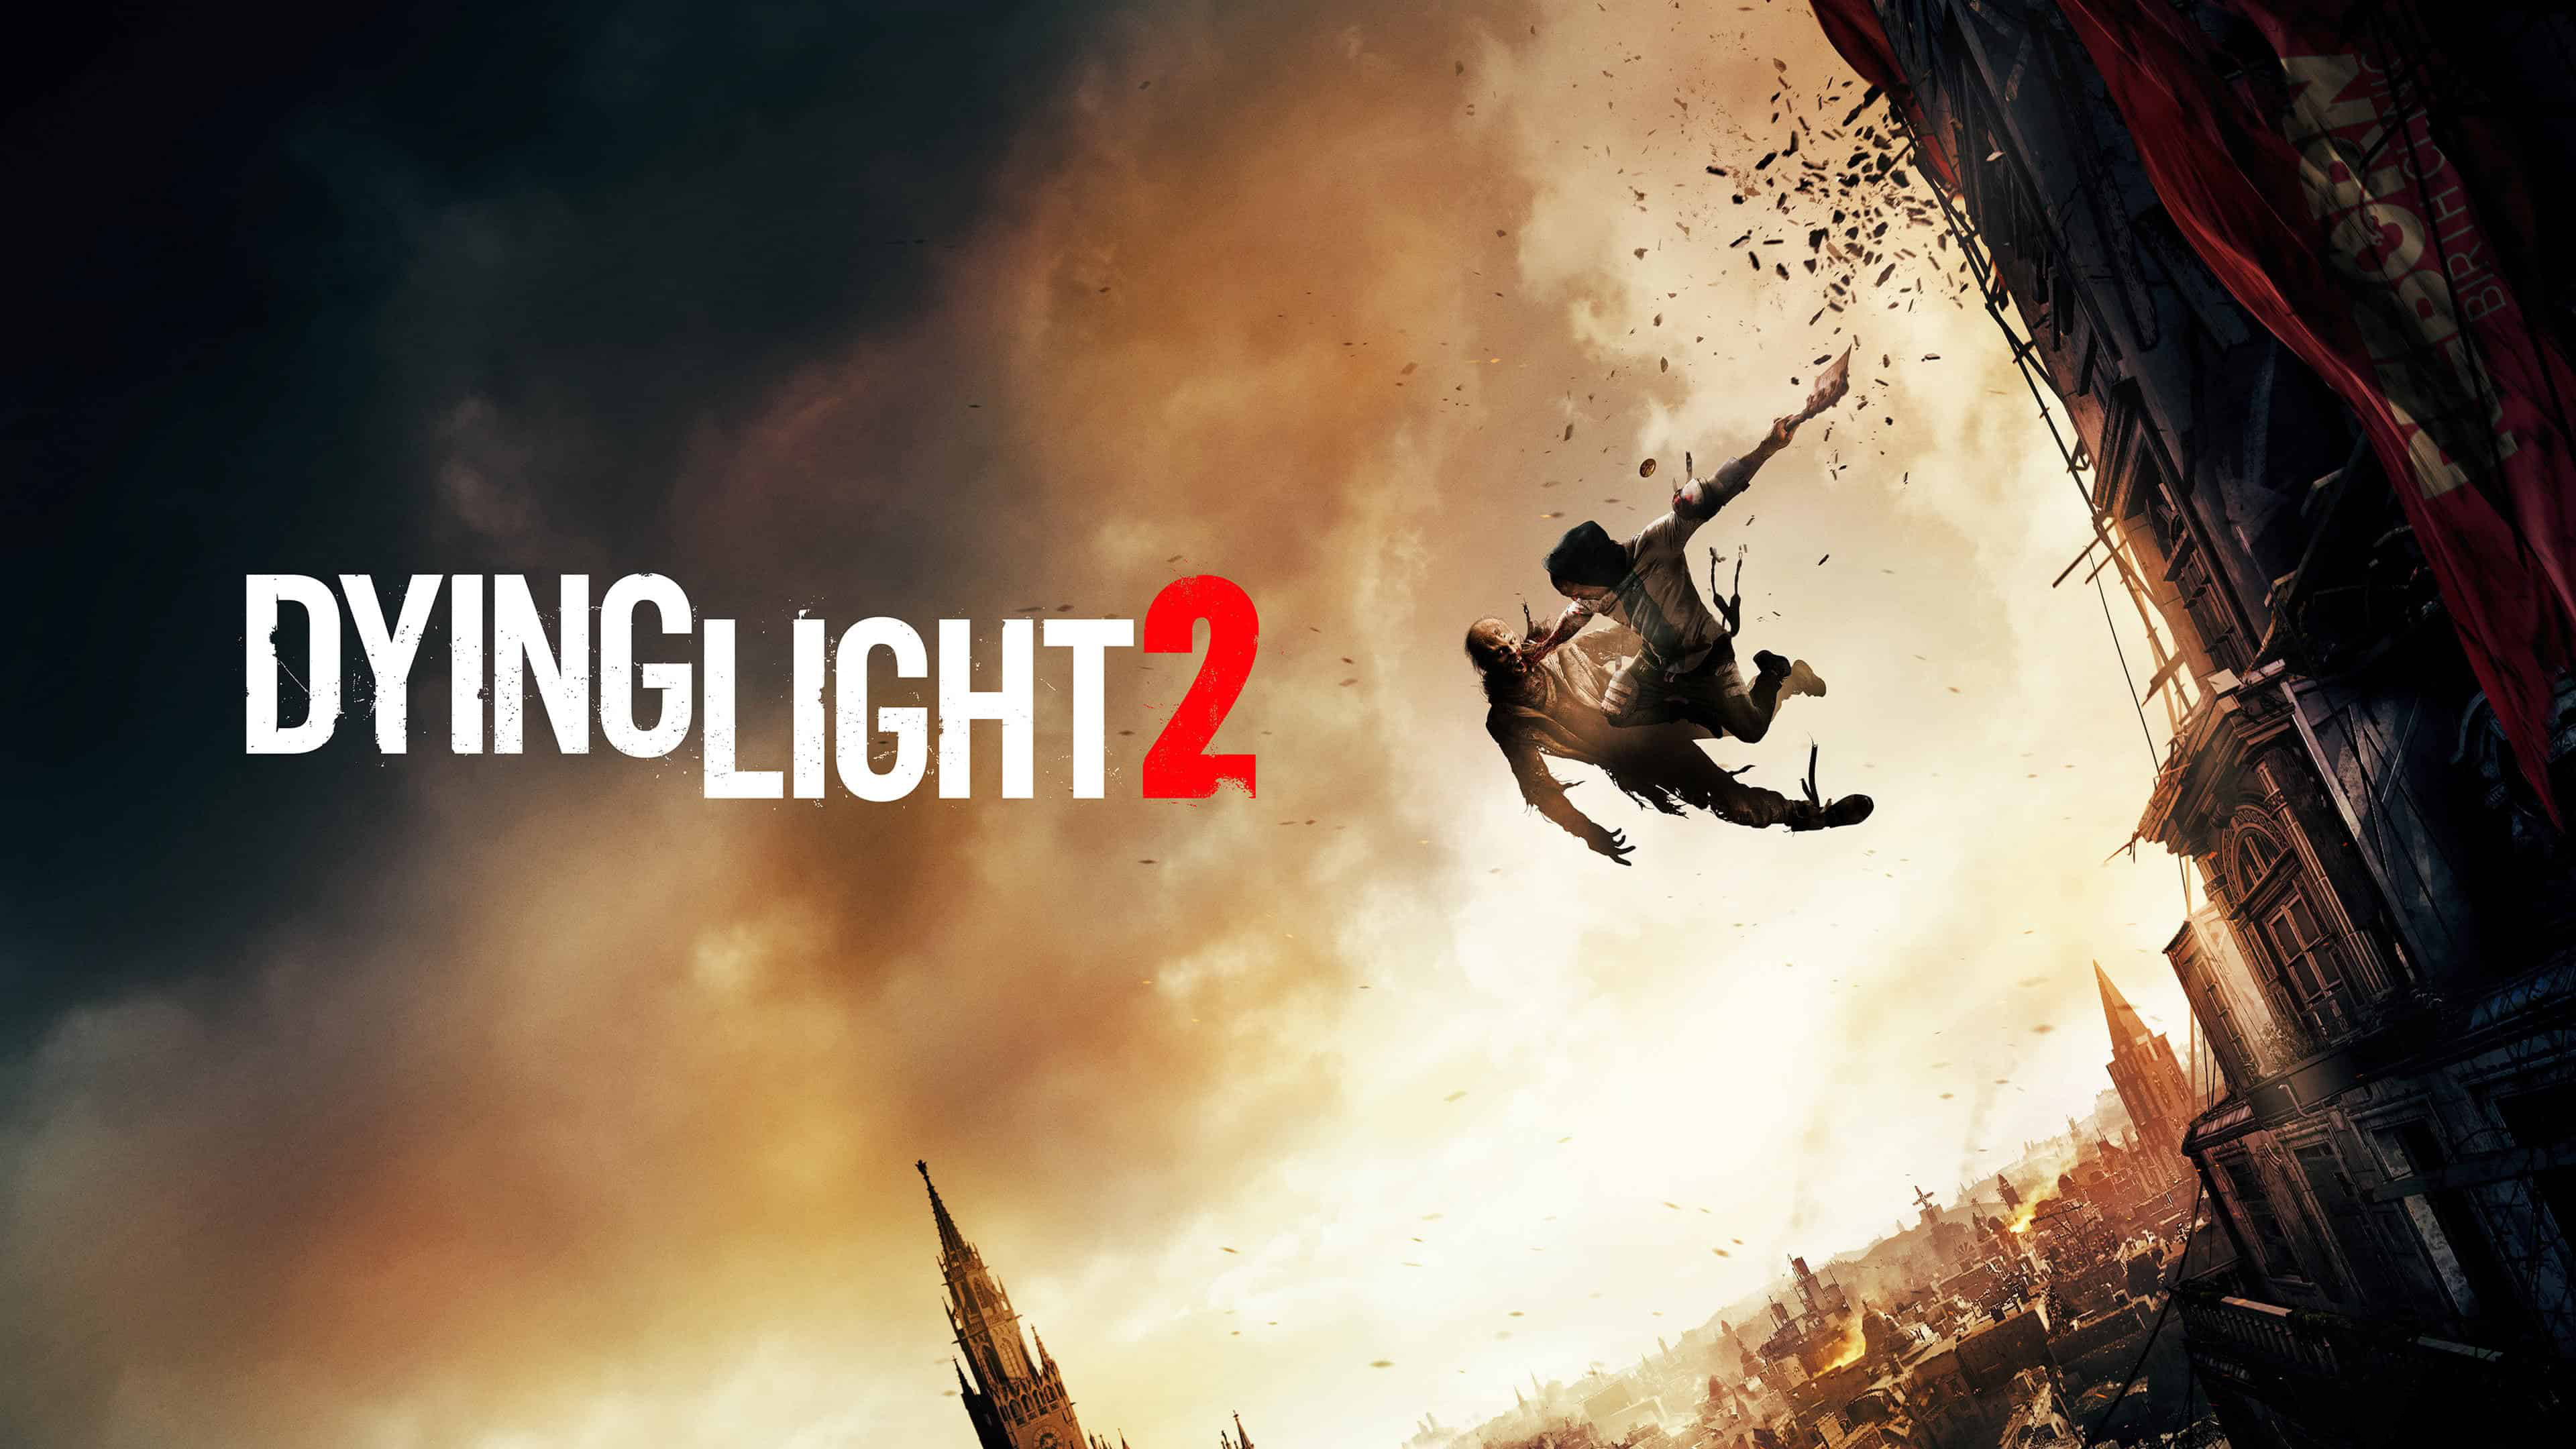 Dying Light 2: Release date, gameplay, story and more | Laptop Mag